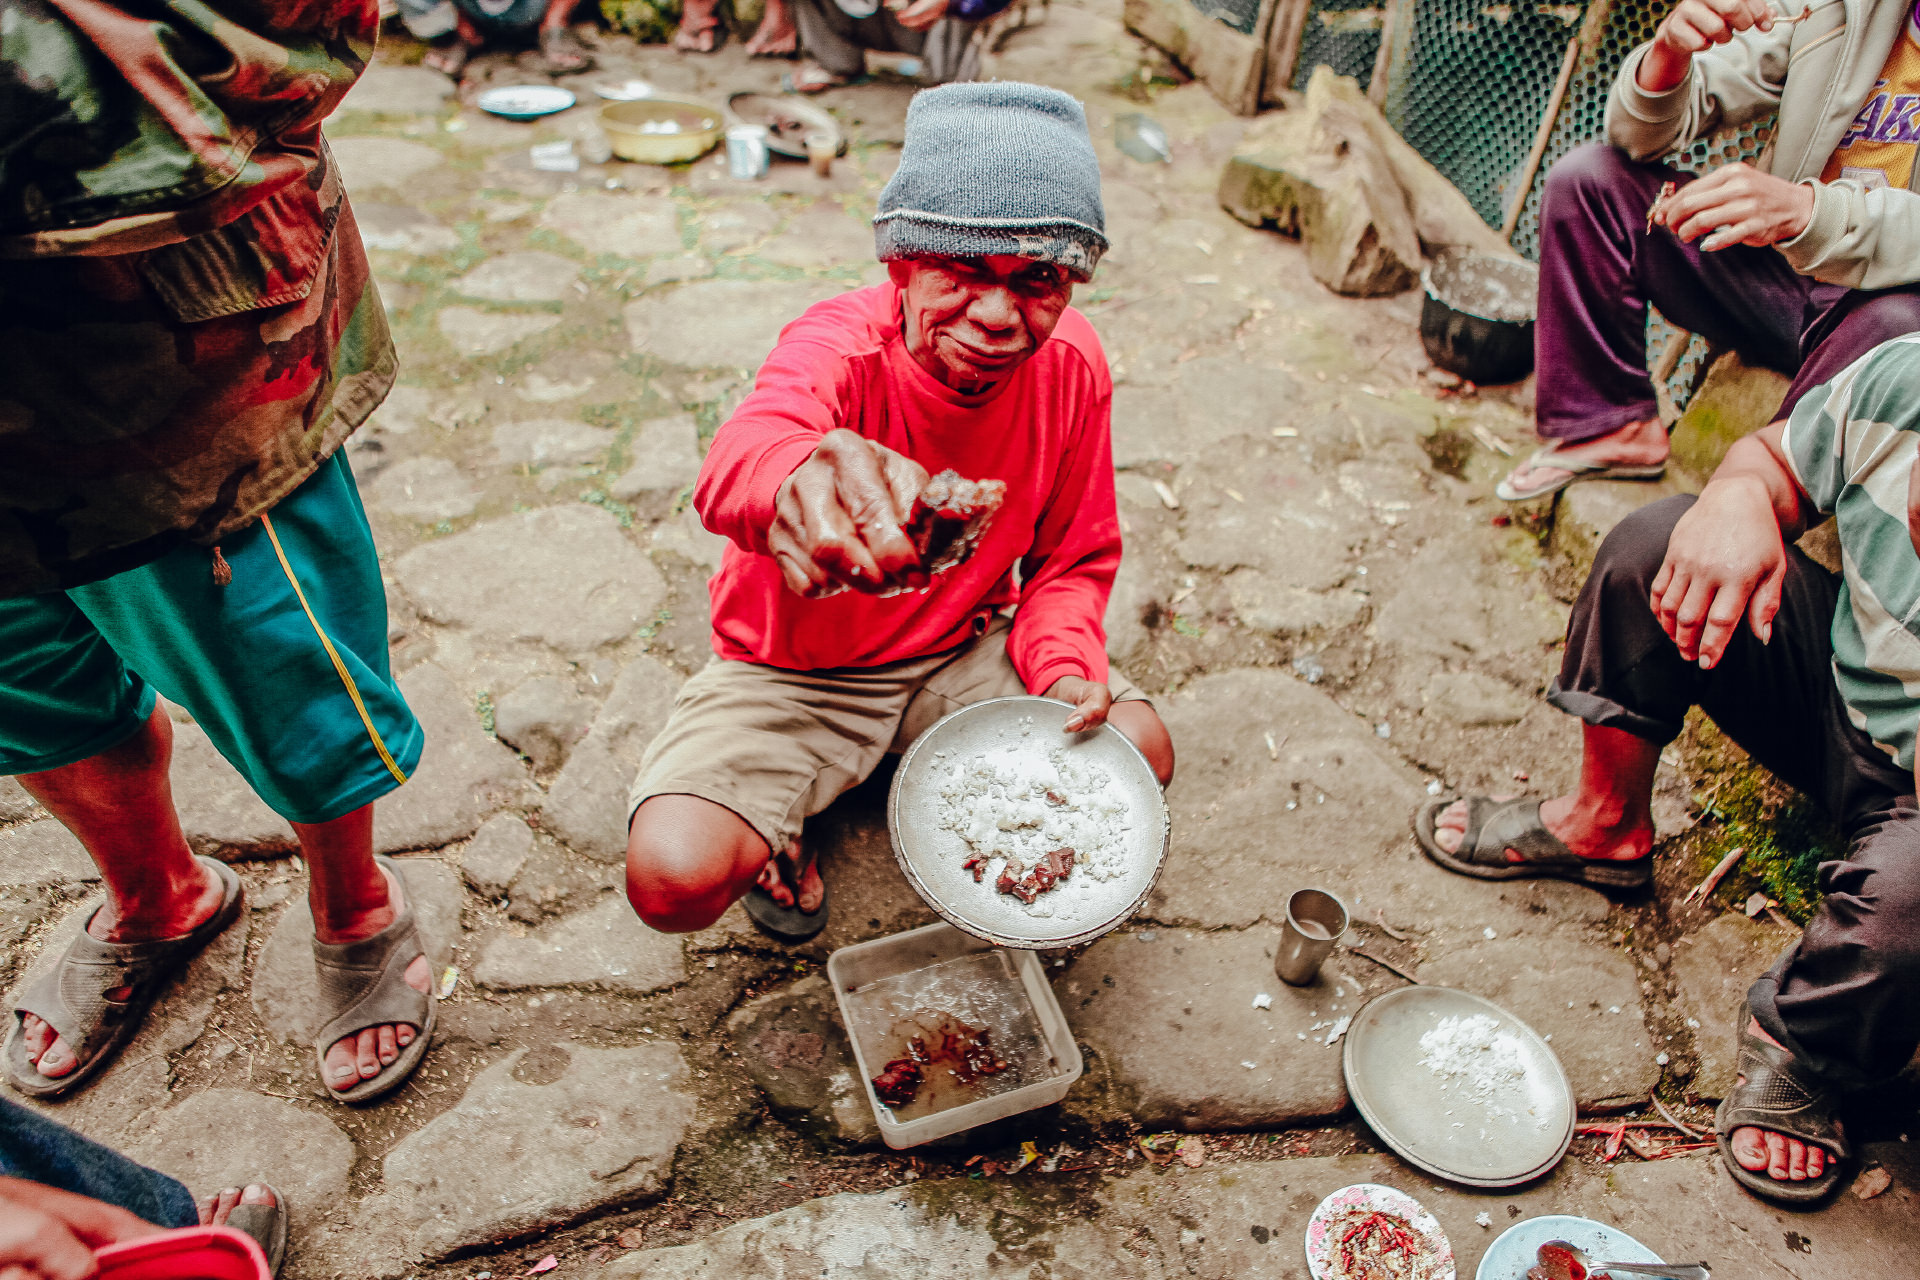 Man offering his food